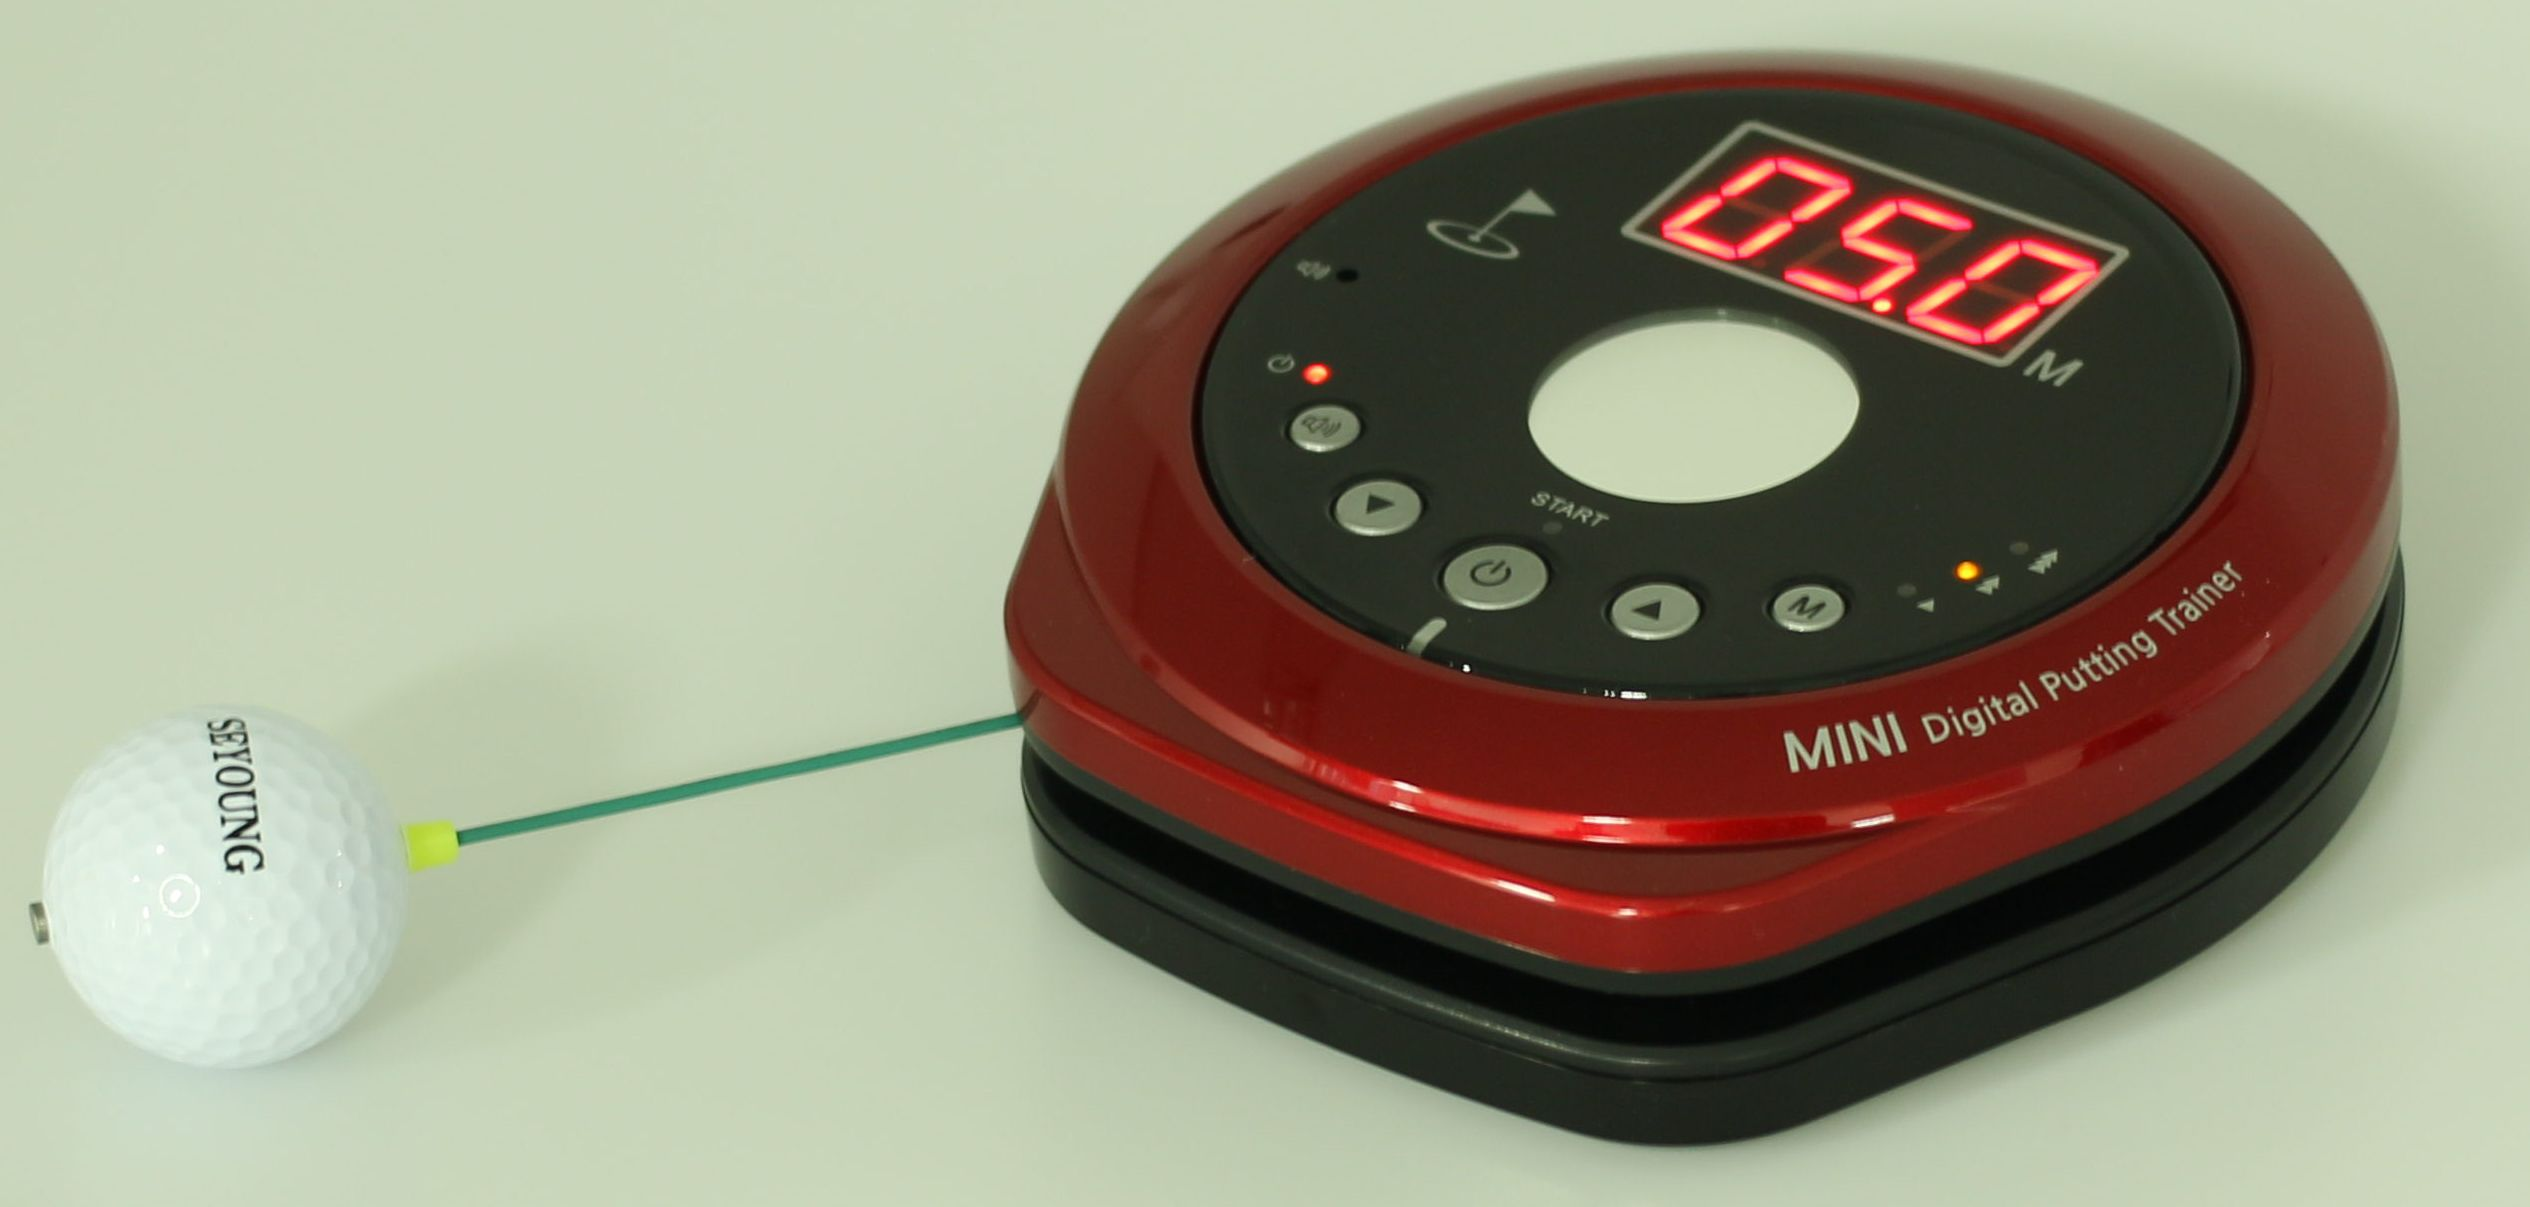 KP-A268 : Digital Putting Trainer (MINI) image